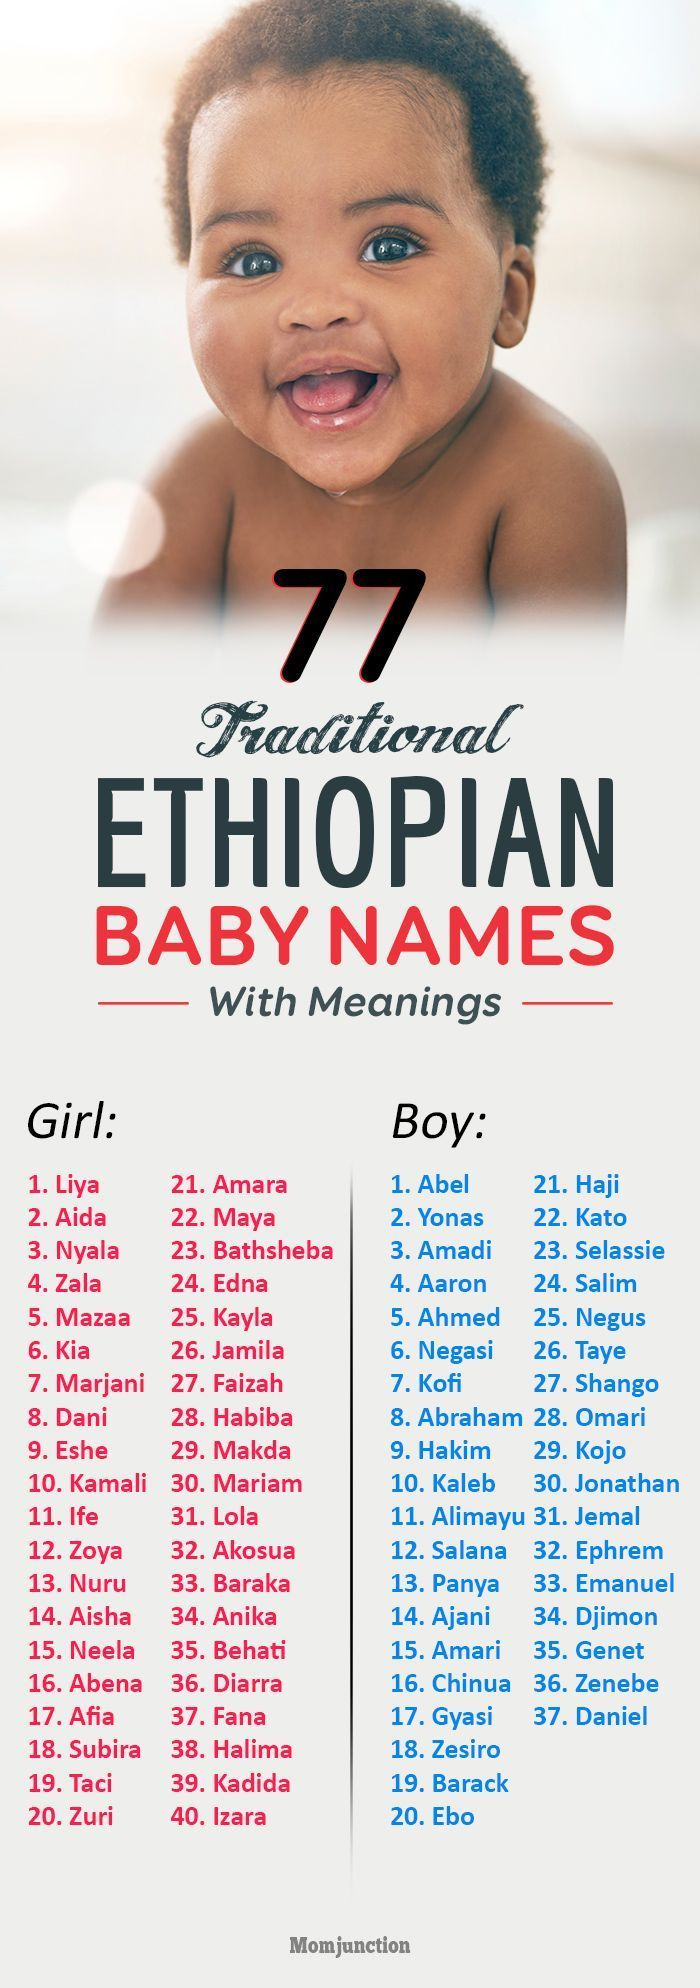 813 best Baby Names images on Pinterest | Character names ...